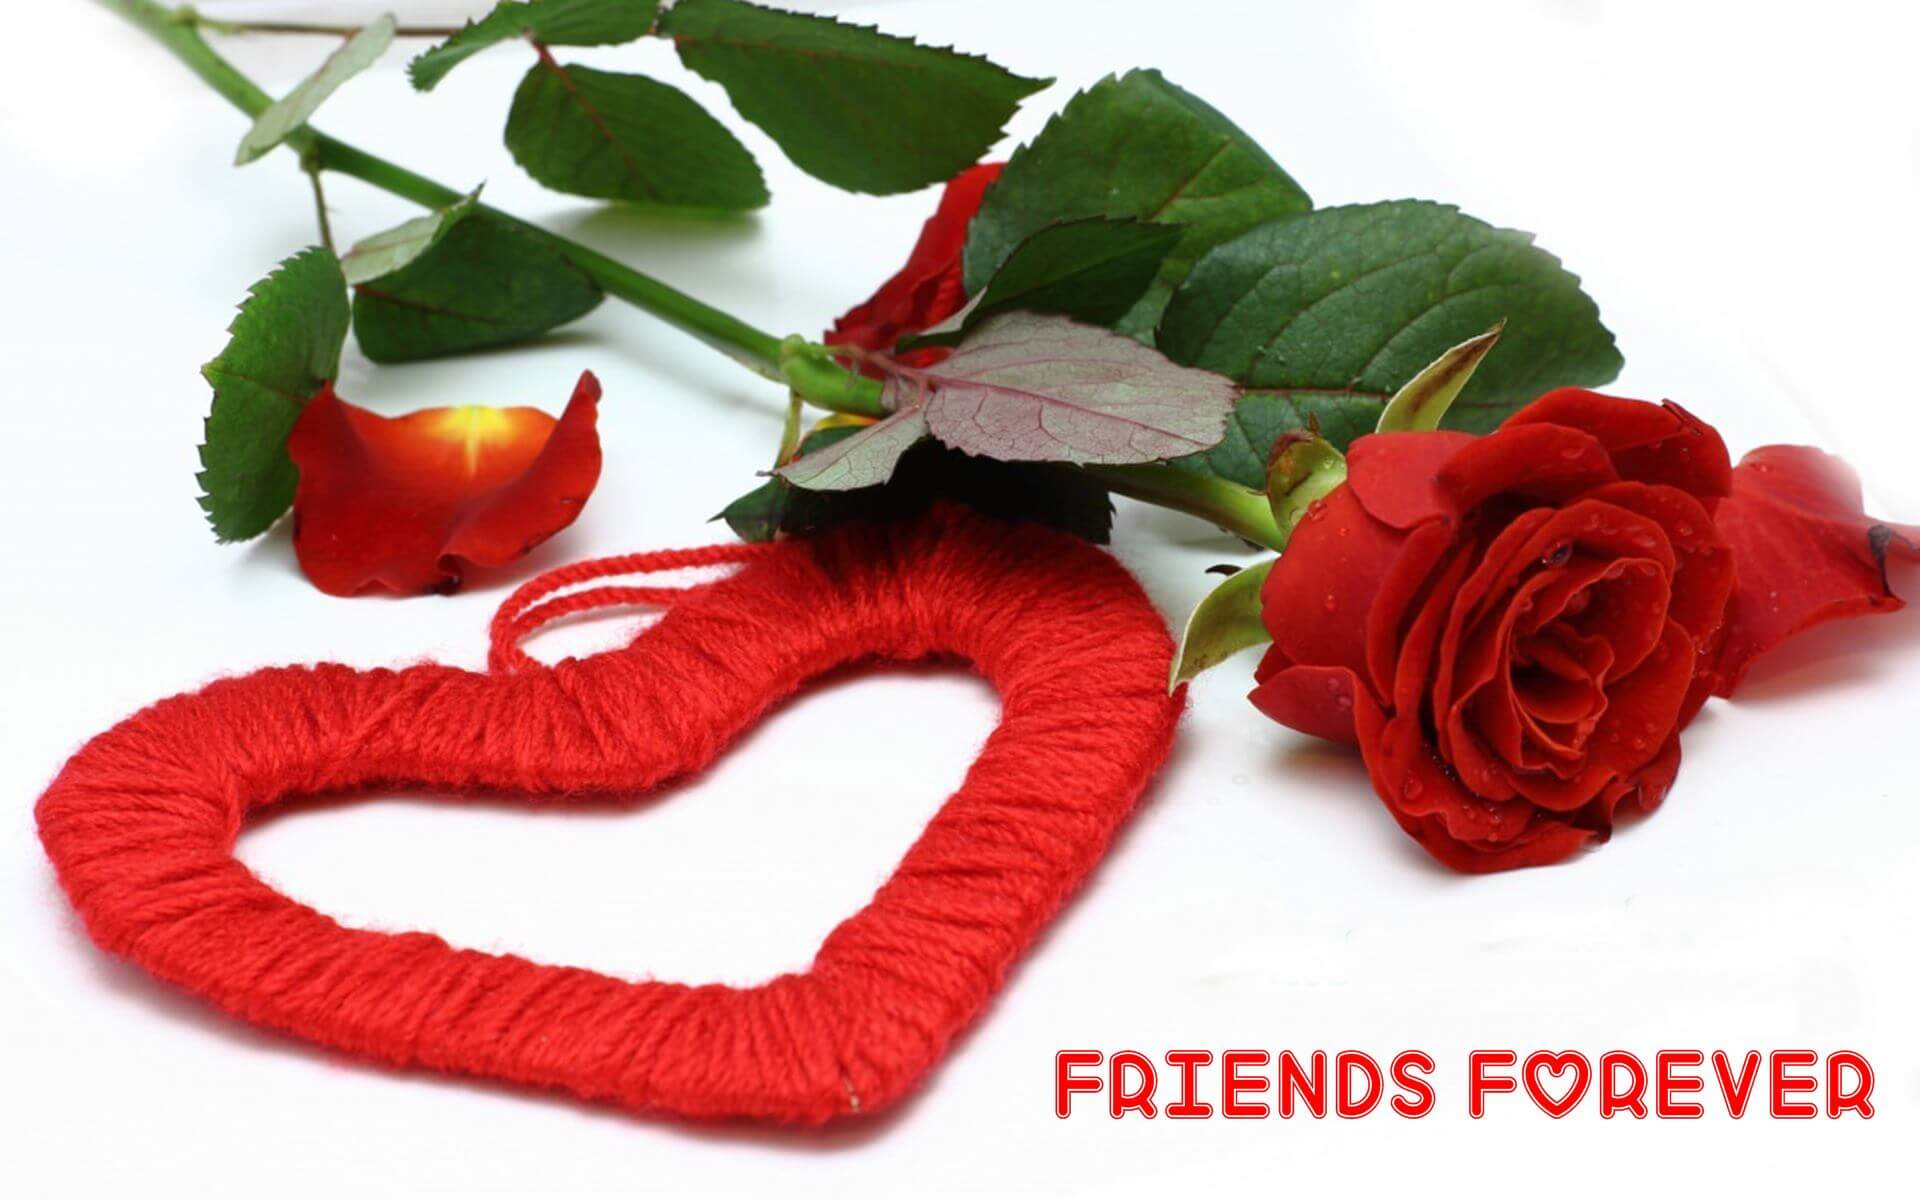 Happy friendship day love and rose hd wallpaper altavistaventures Image collections